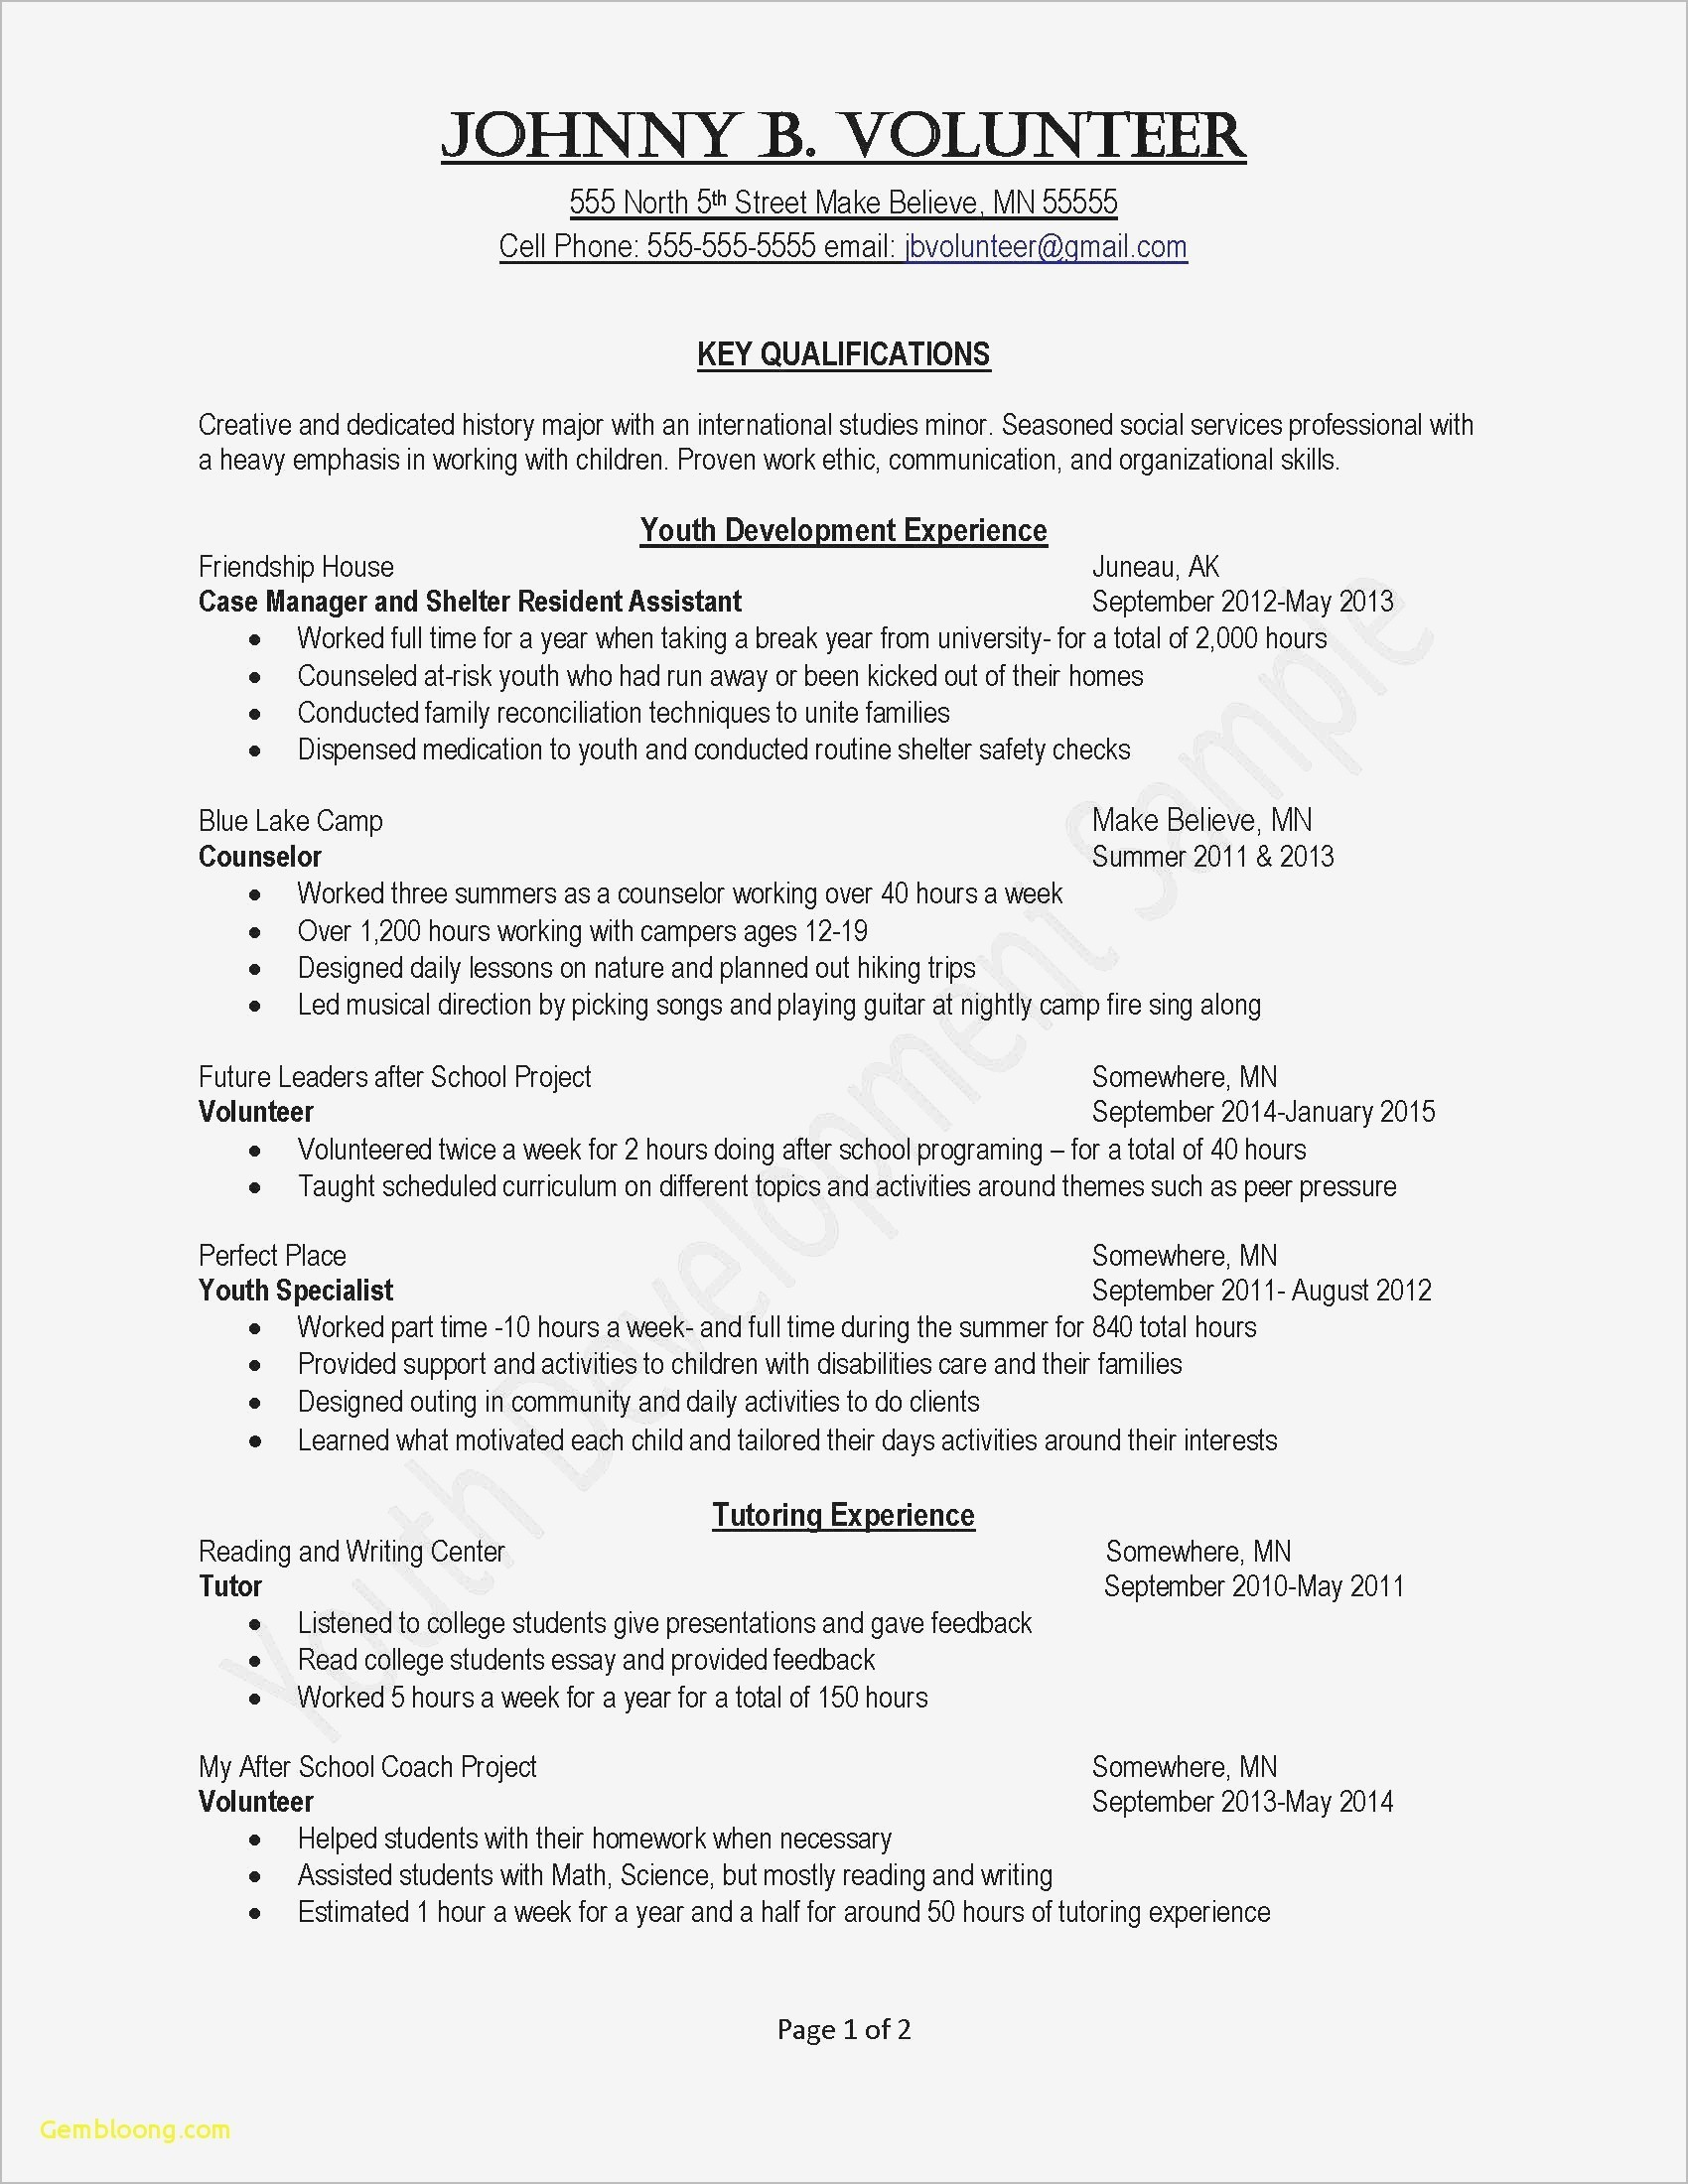 How to Create A Cover Letter Template - Fax Cover Sheet for Resume Inspirationa Fax Cover Letter Template